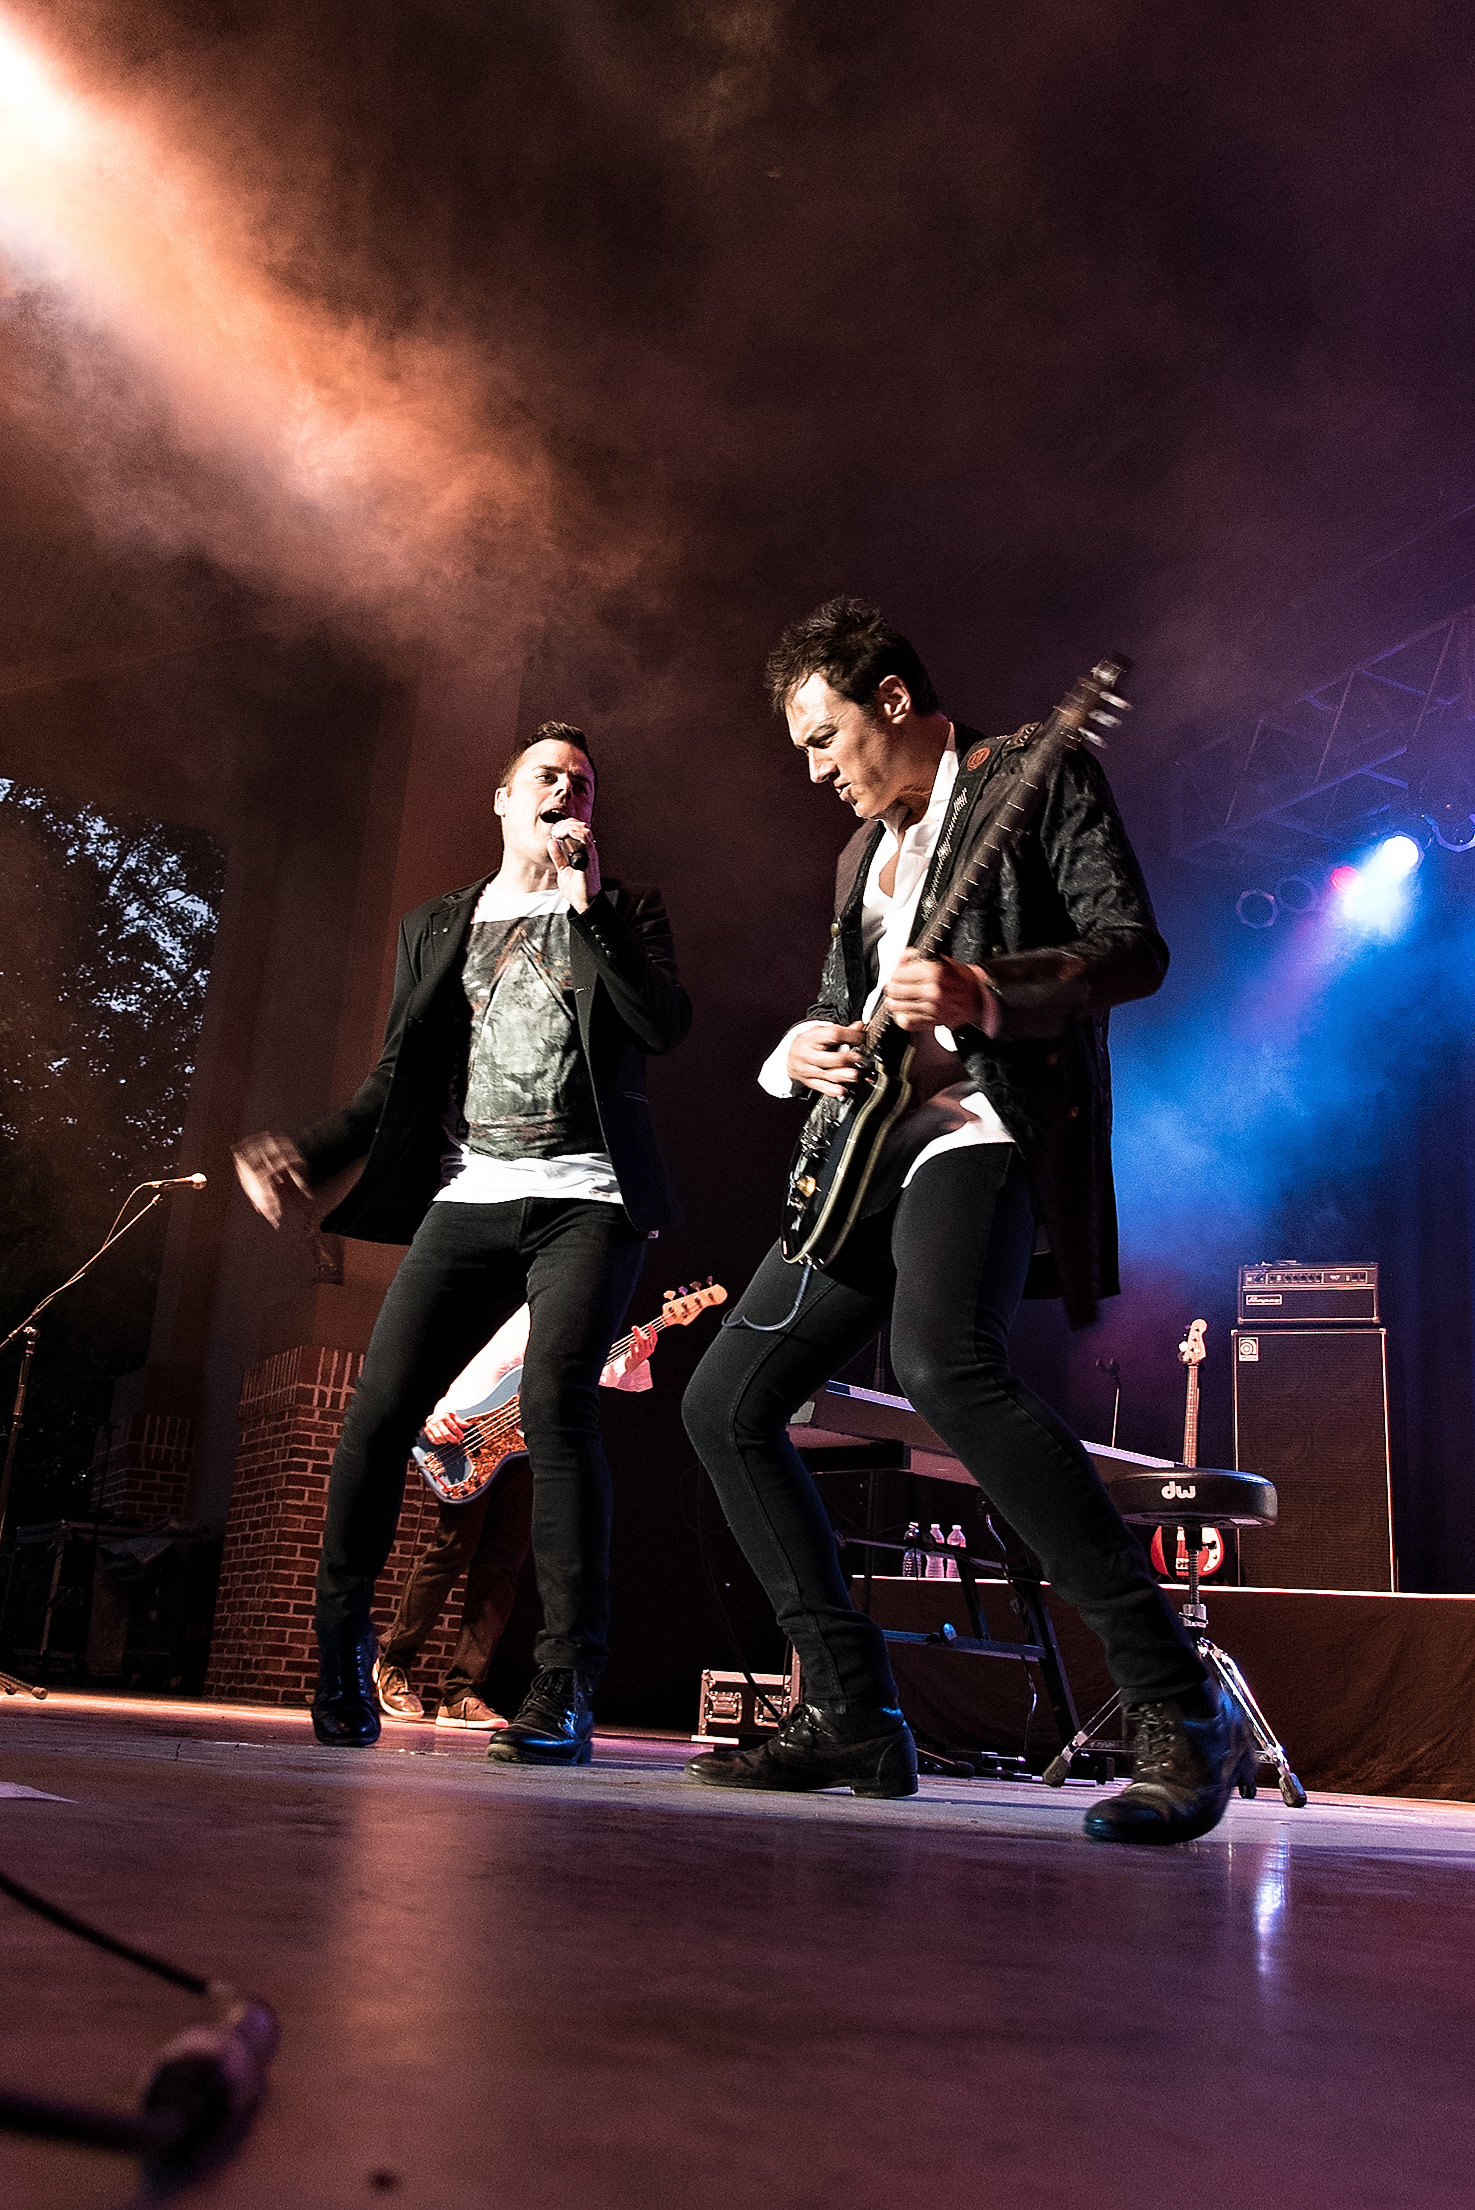 Marc Martel and Tristan Avakian UQC